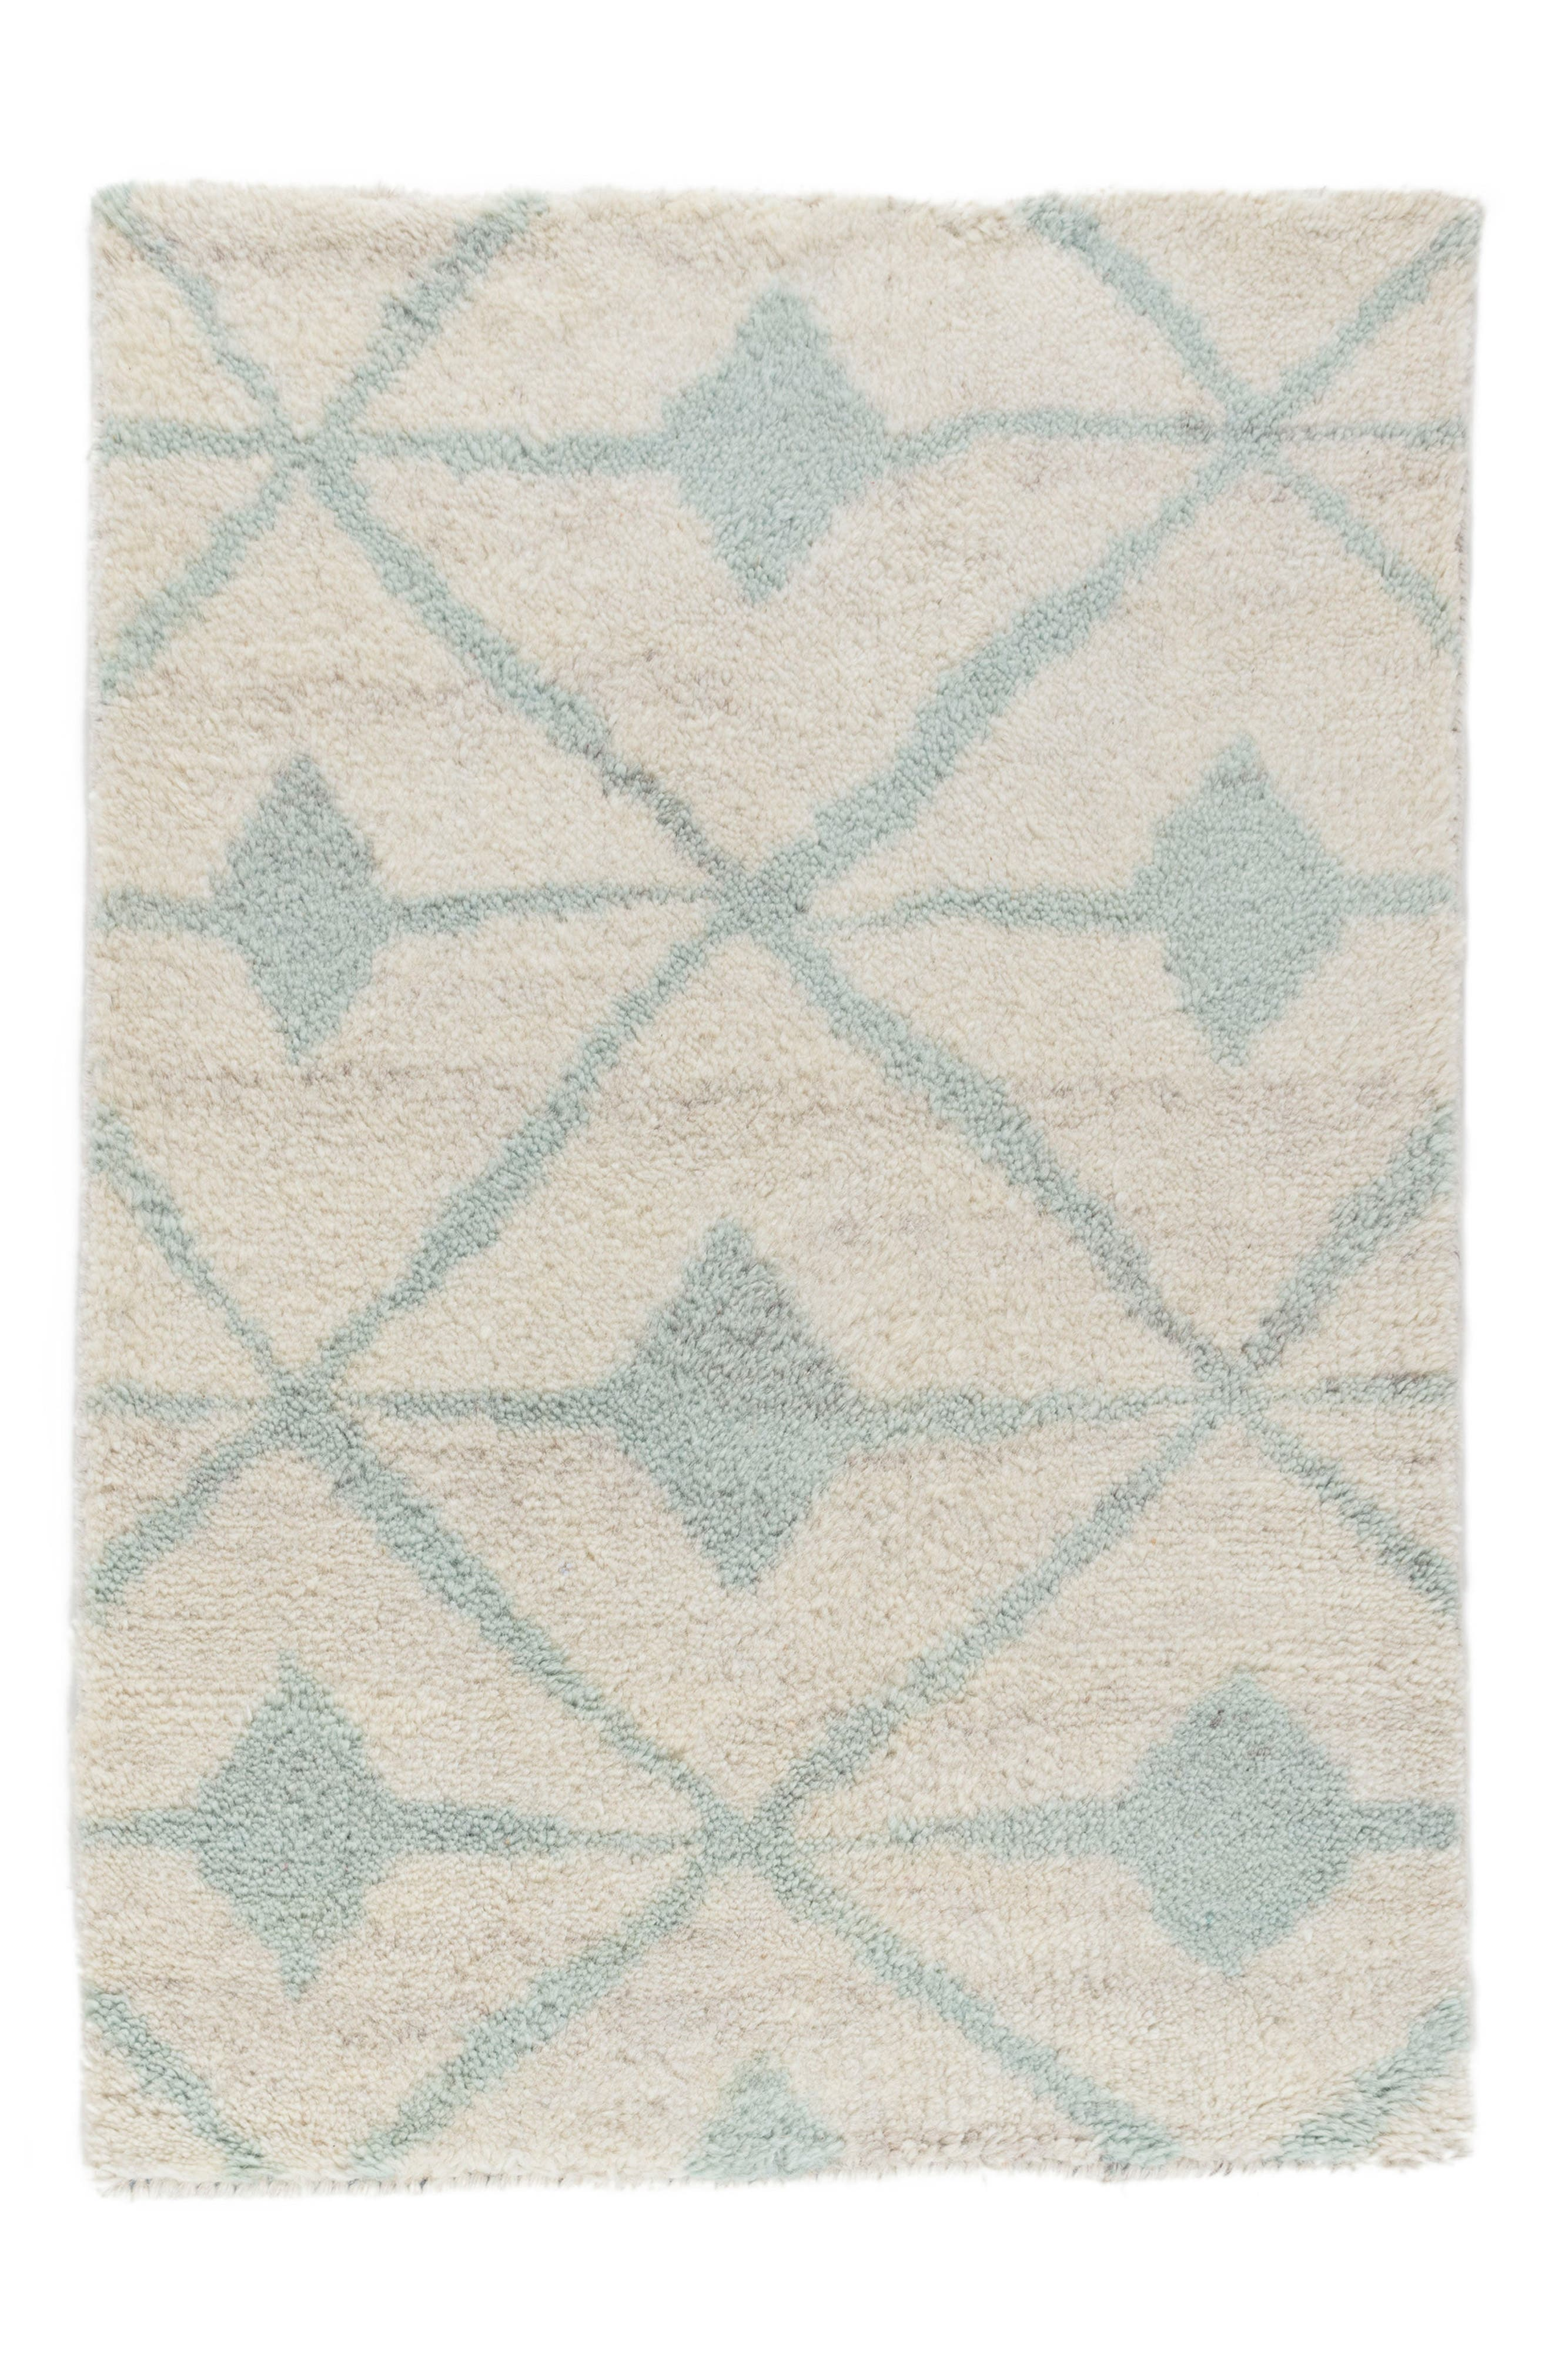 Kenitra Hand Knotted Rug,                             Main thumbnail 1, color,                             Robins Egg Blue